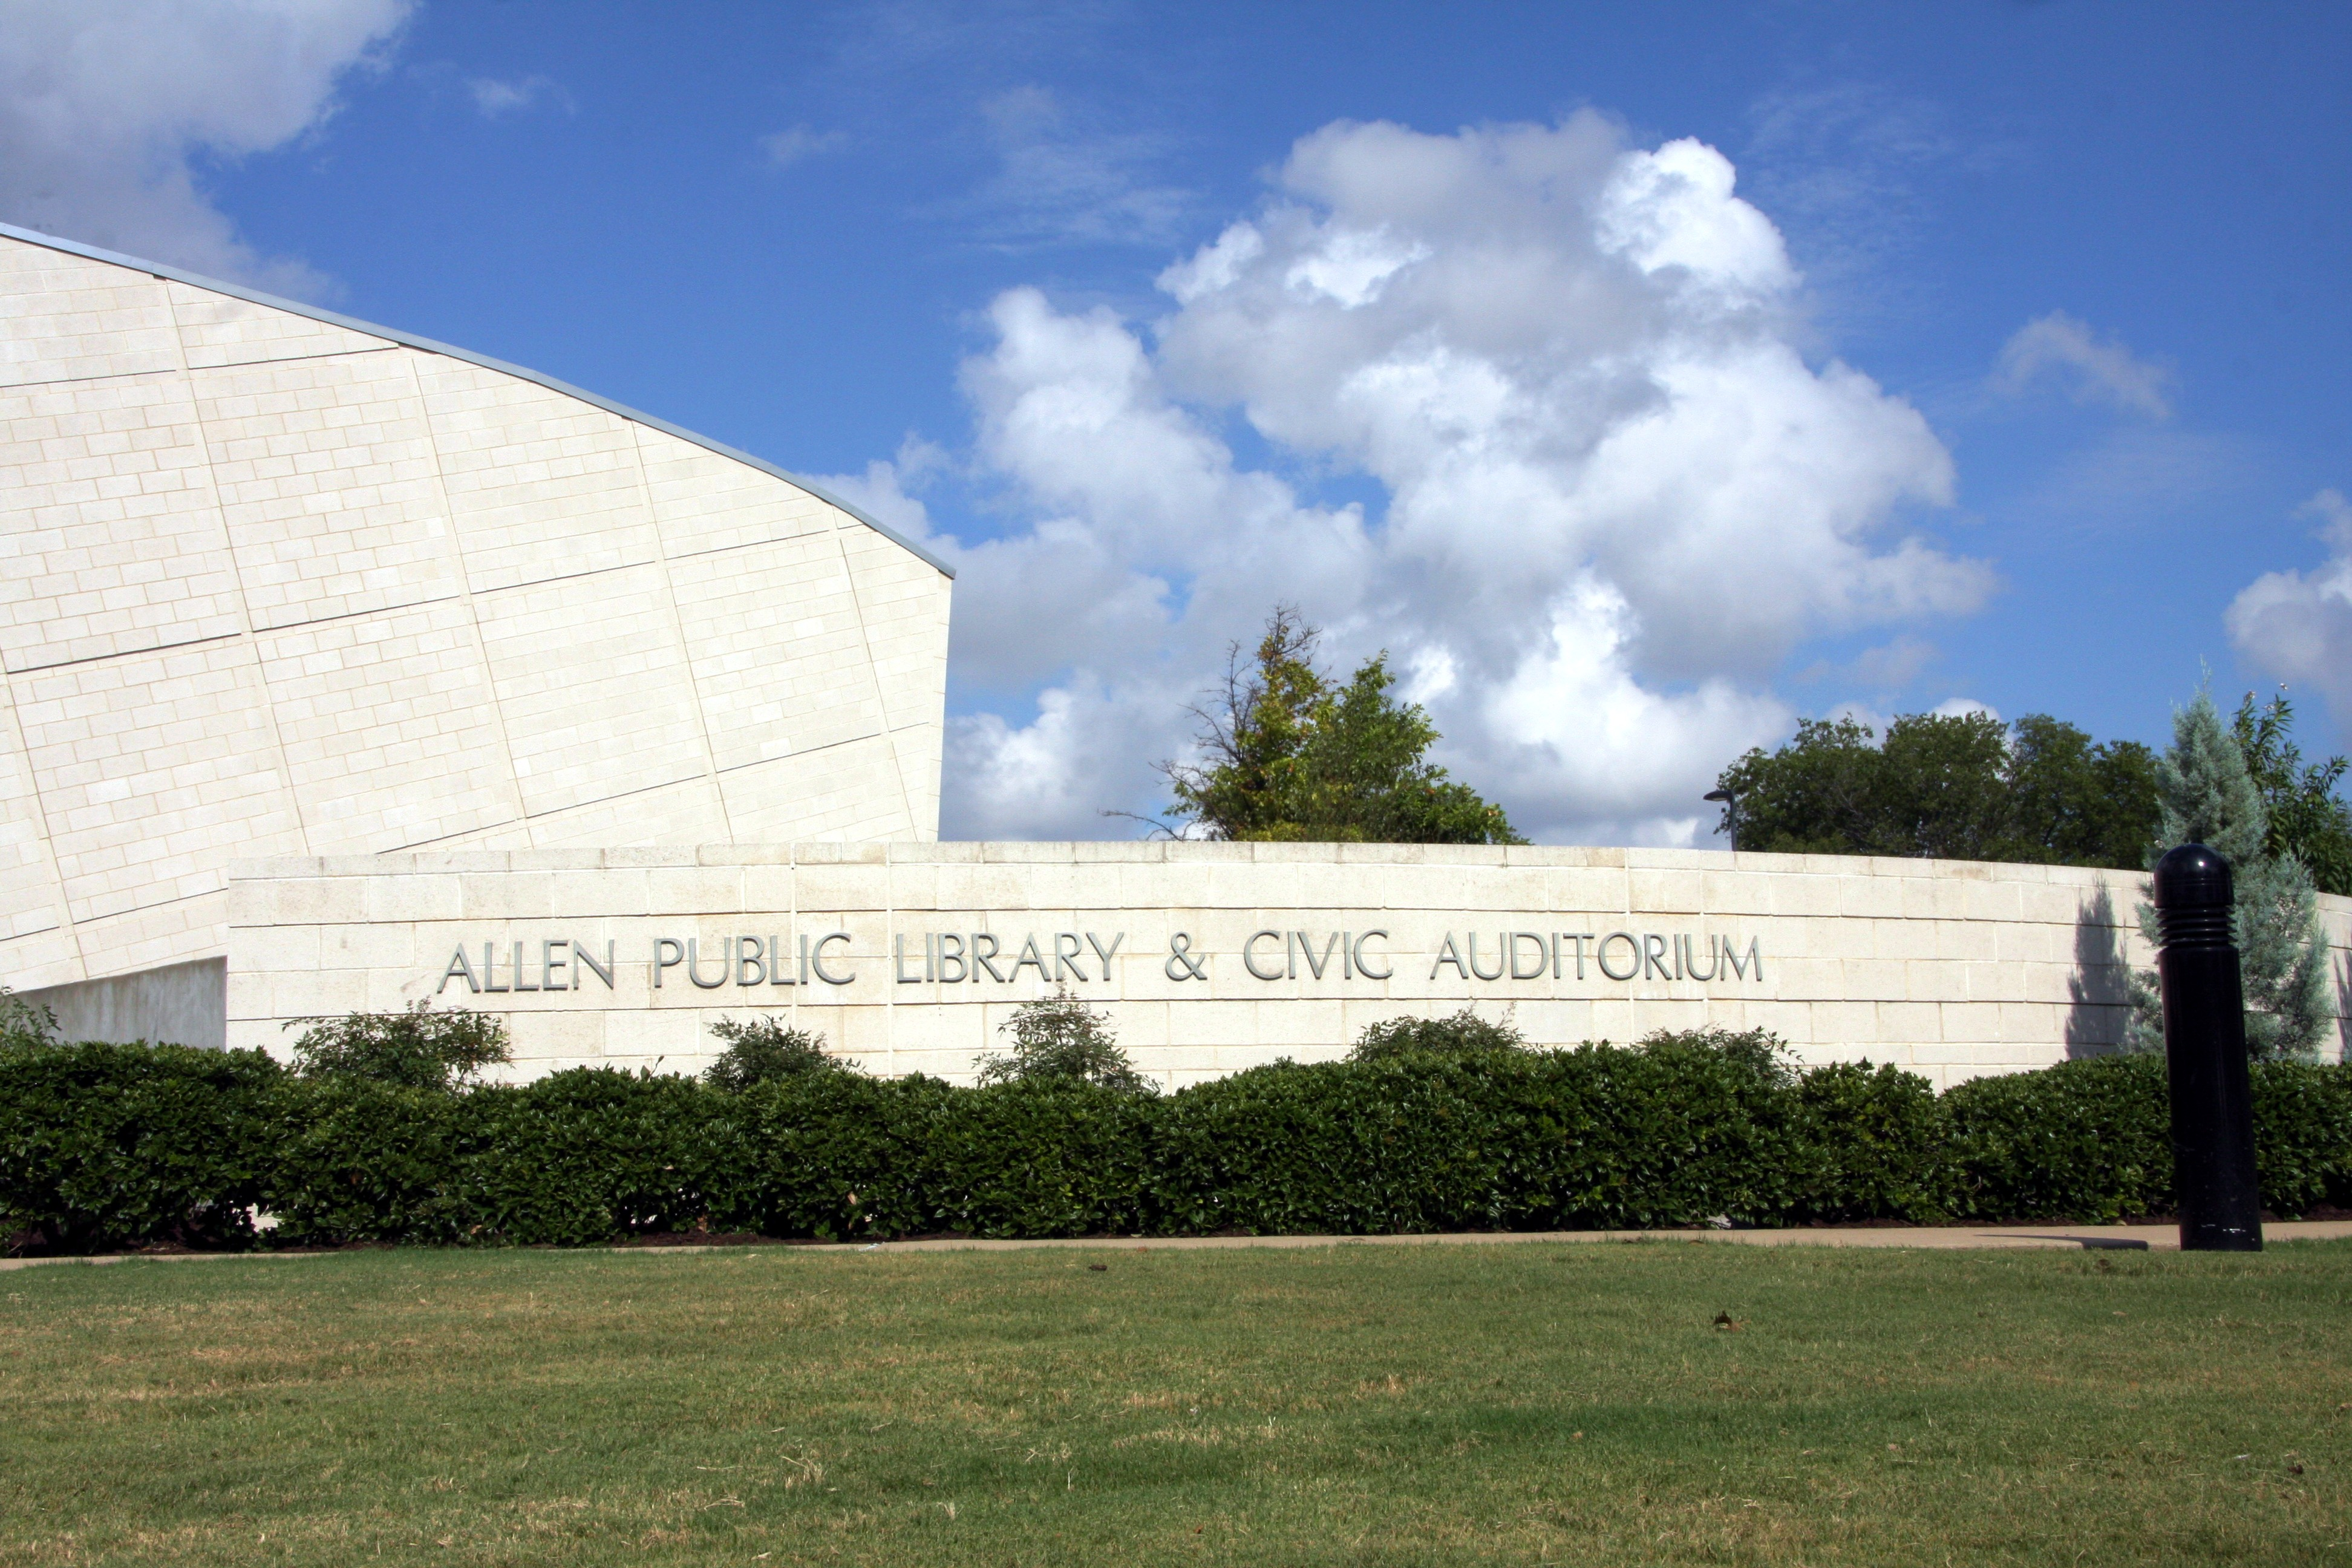 Civic Auditorium at Allen Public Library